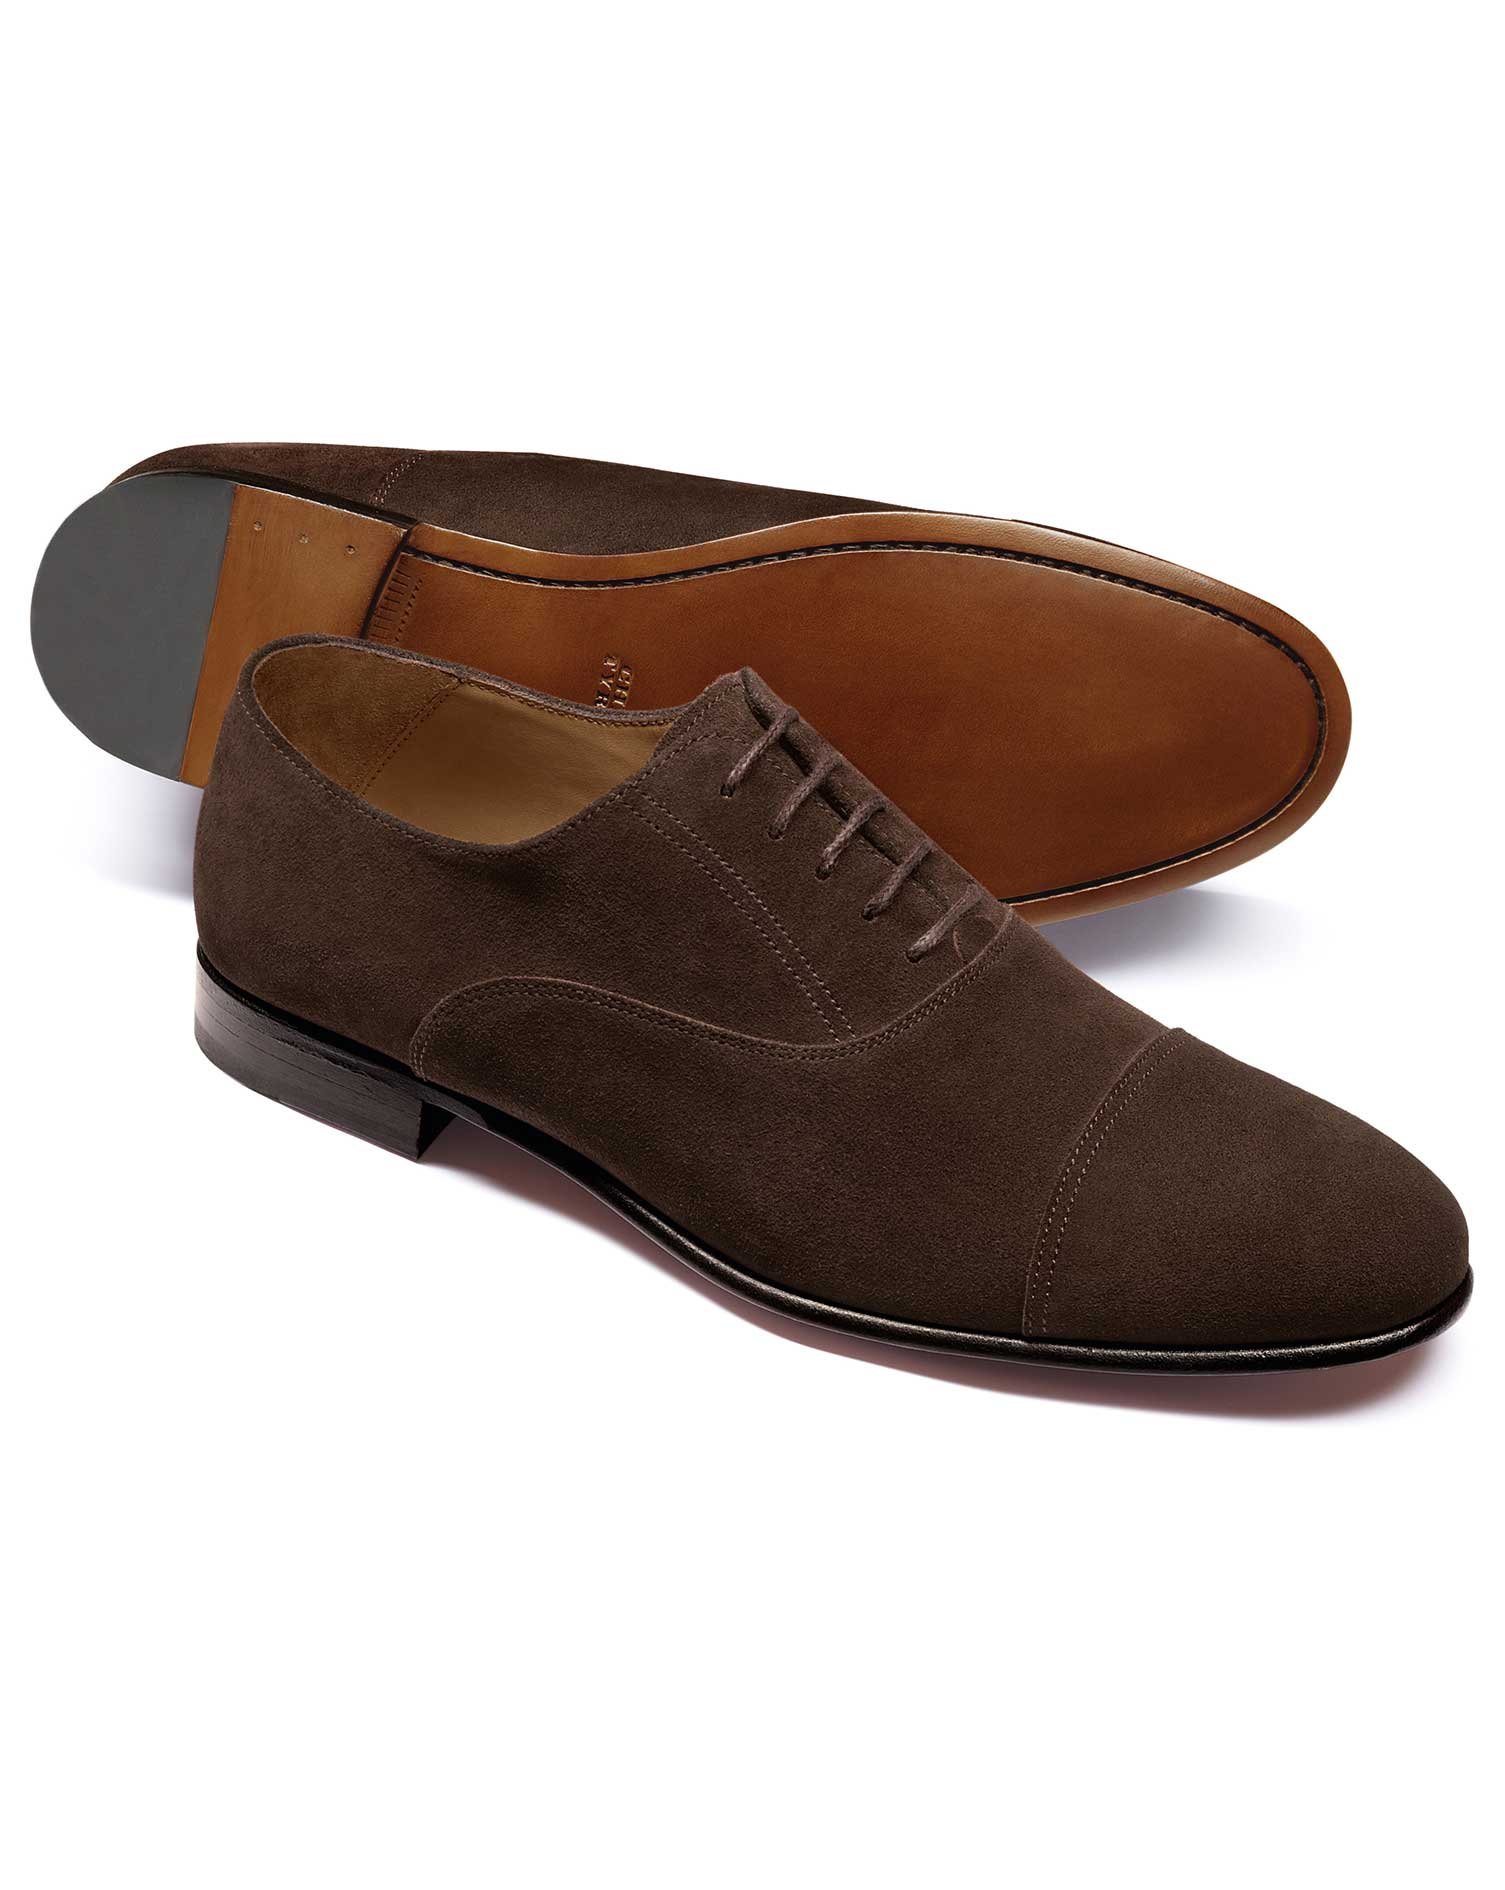 Chocolate Suede Oxford Shoe Size 9.5 R by Charles Tyrwhitt